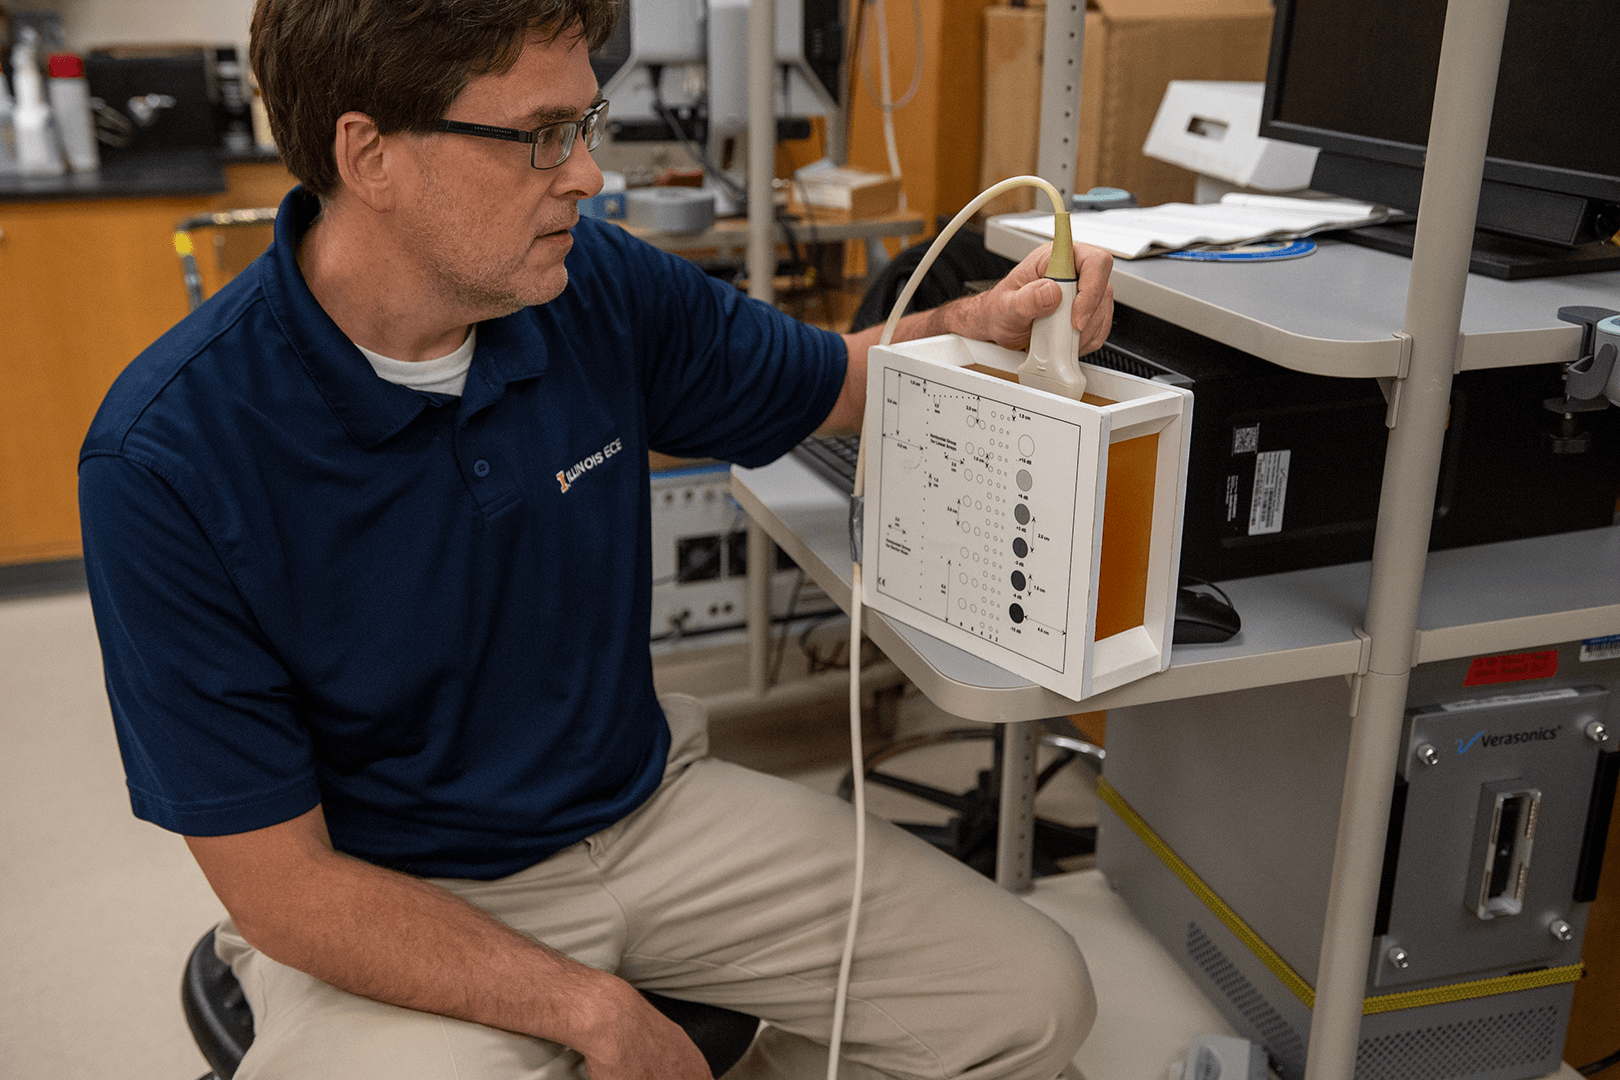 Michael Oelze with Ultrasound Technology